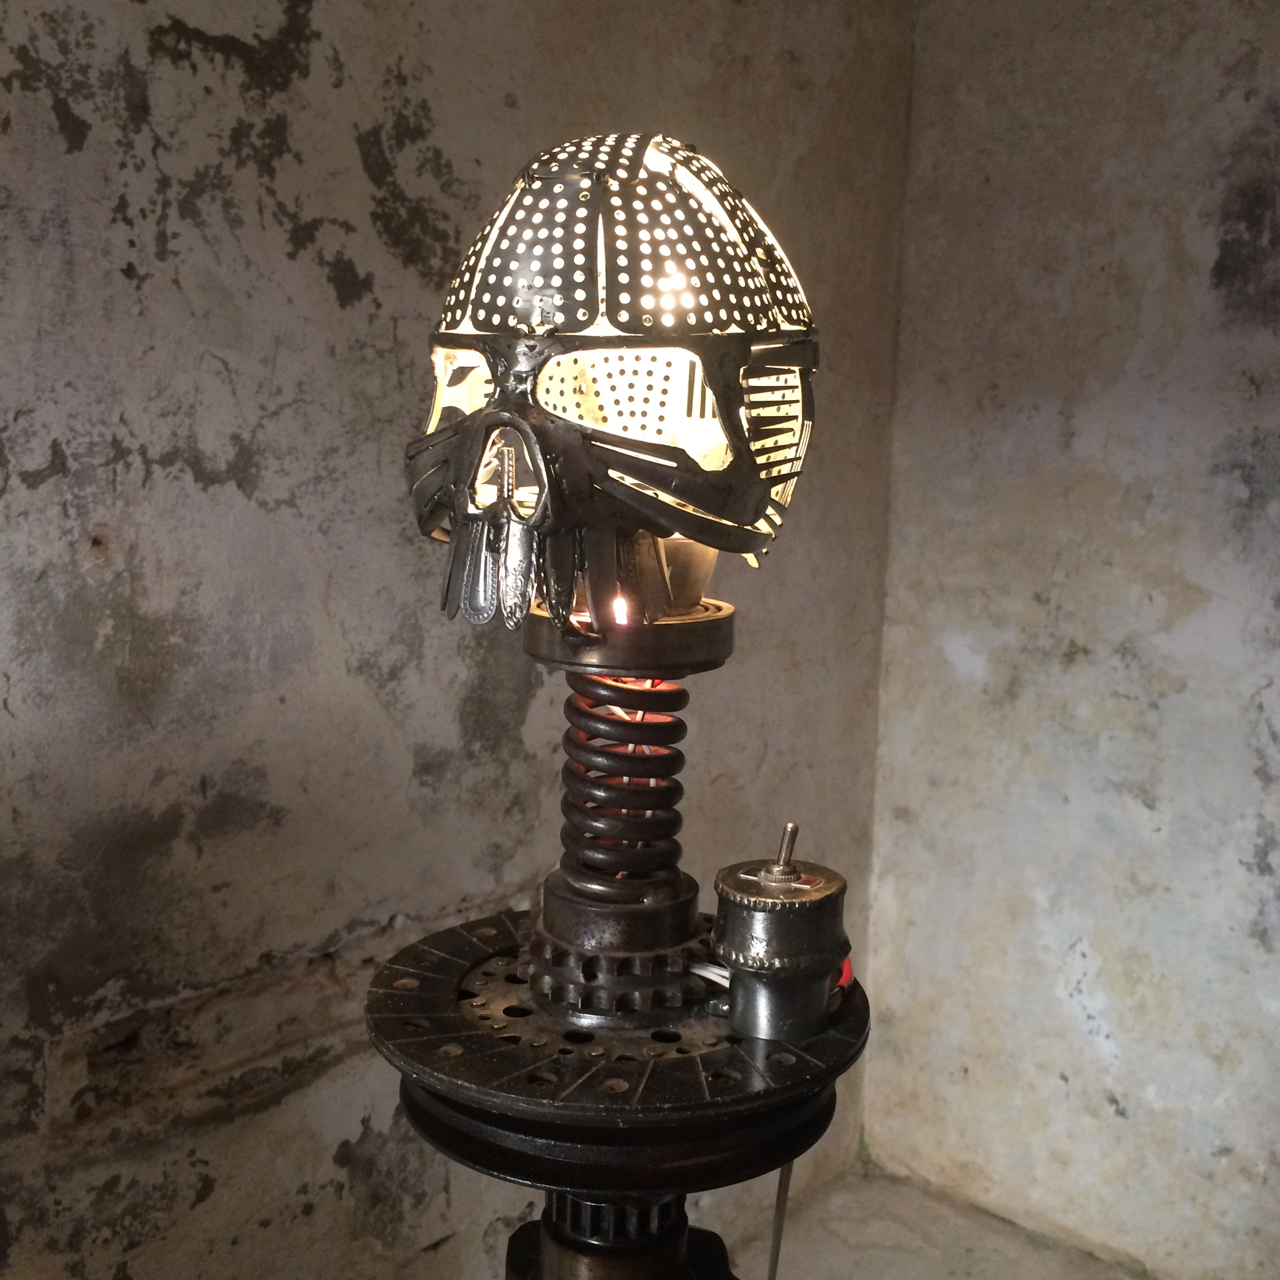 Sculpture_in_the_Gaol_2018-Skull_Lamp-by-Sam_Hawkins.jpg